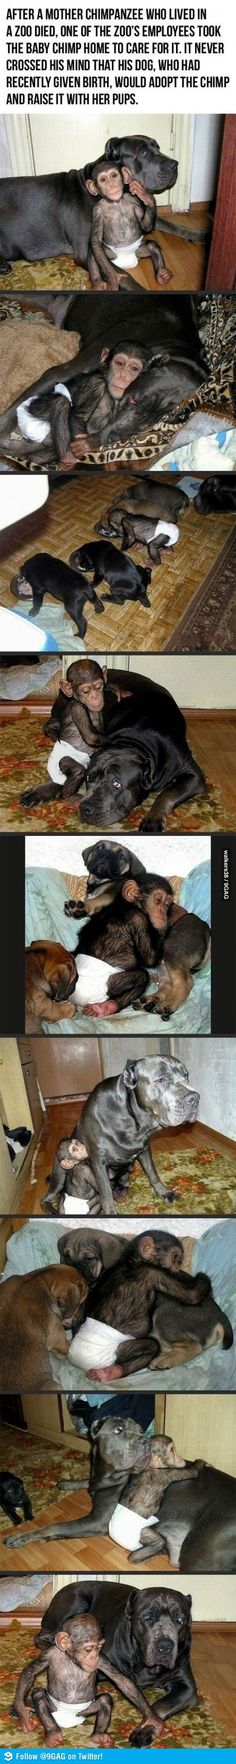 Dog raises baby Chimp